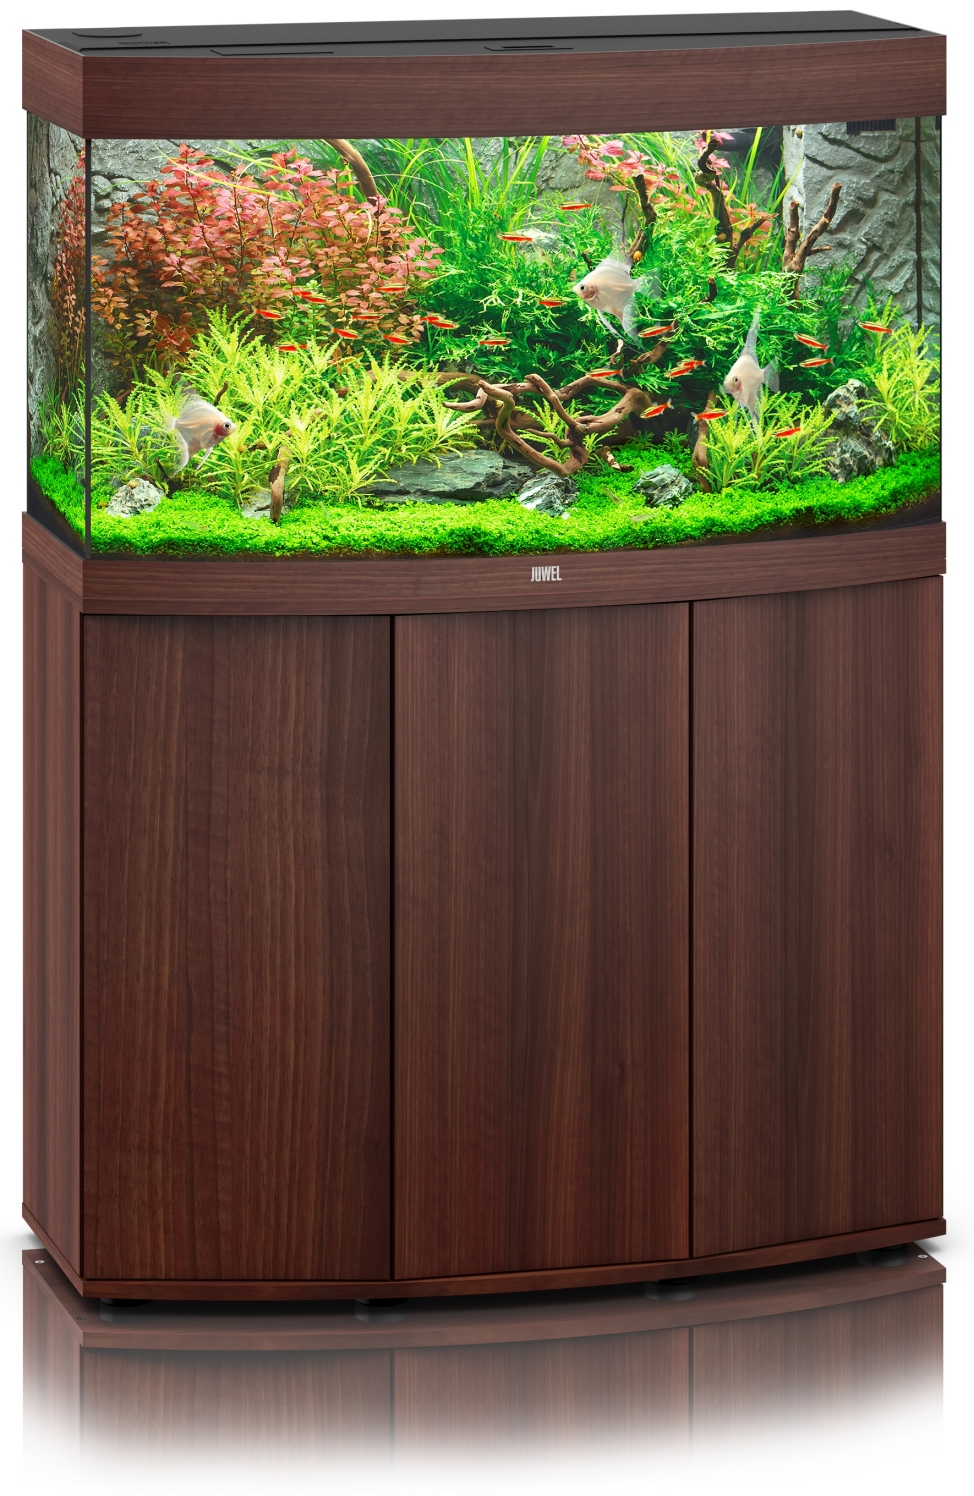 juwel vision 180 die exclusive aquariumkombination von. Black Bedroom Furniture Sets. Home Design Ideas